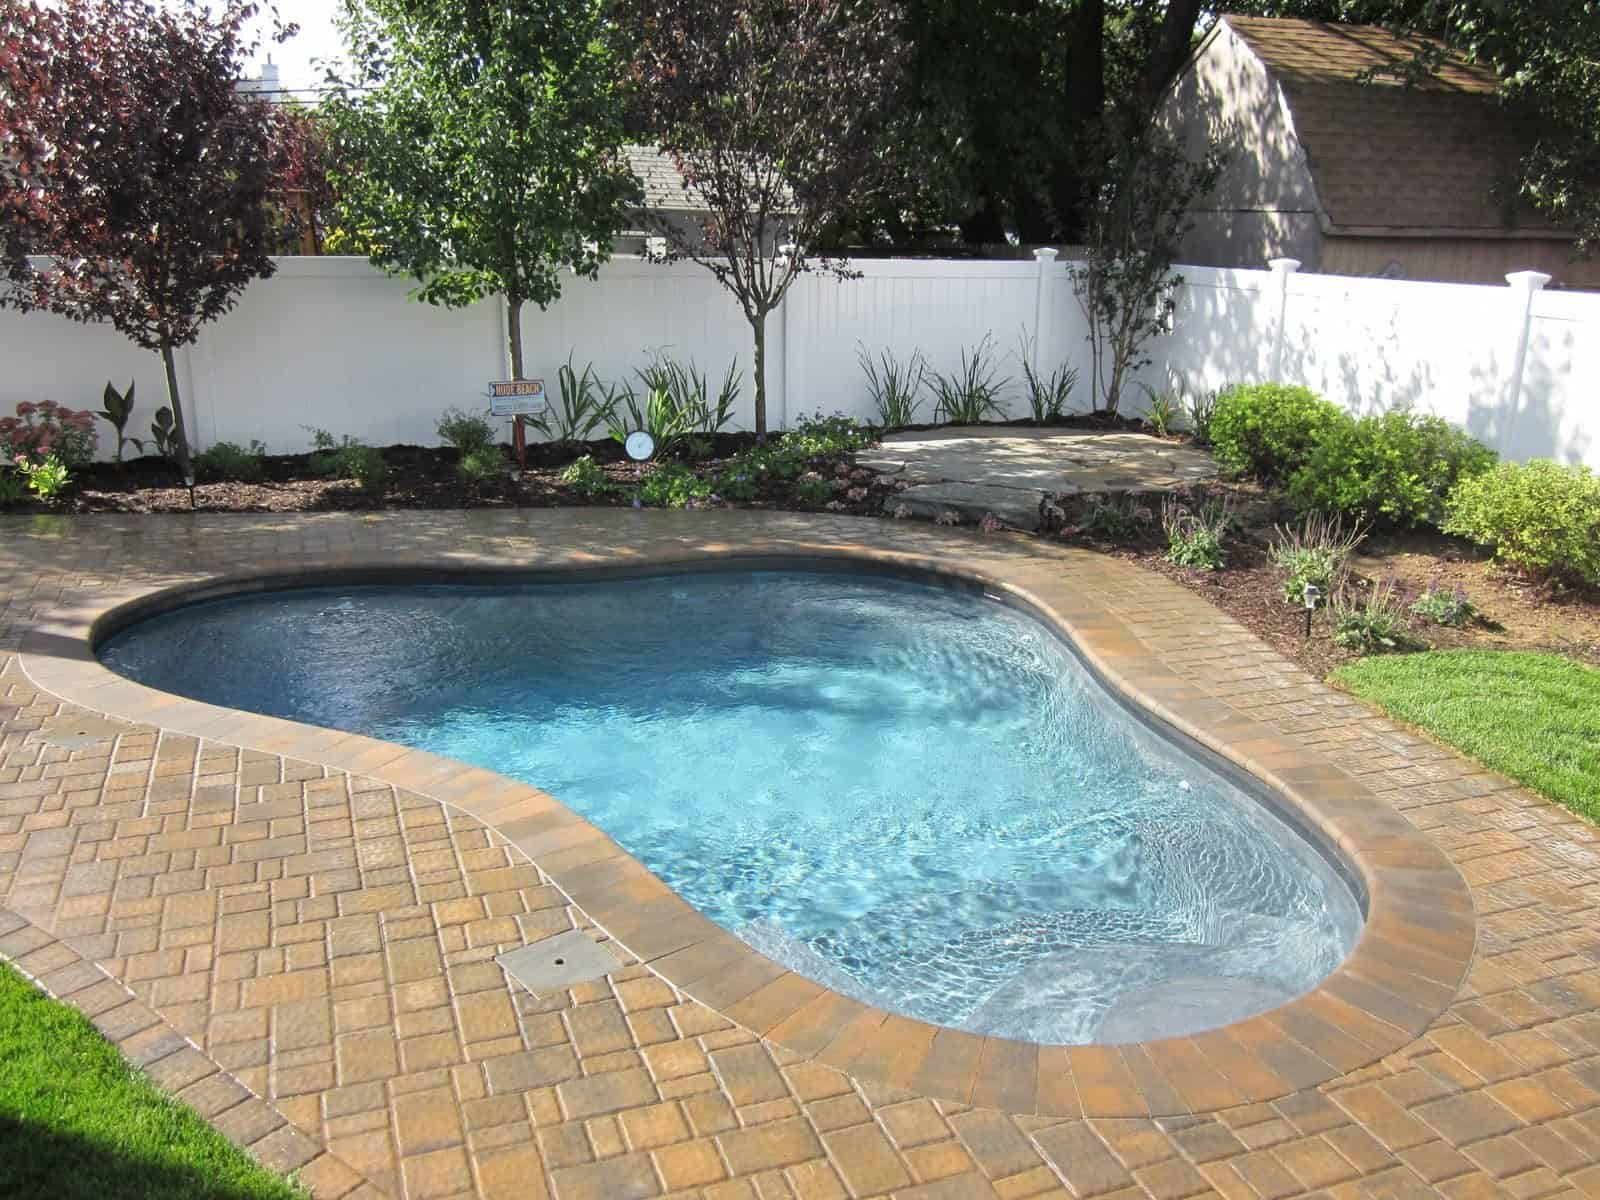 14' x 16' free form Gunite Pool with wedding cake steps and Spa jets - Islip Terrace, Long Island NY